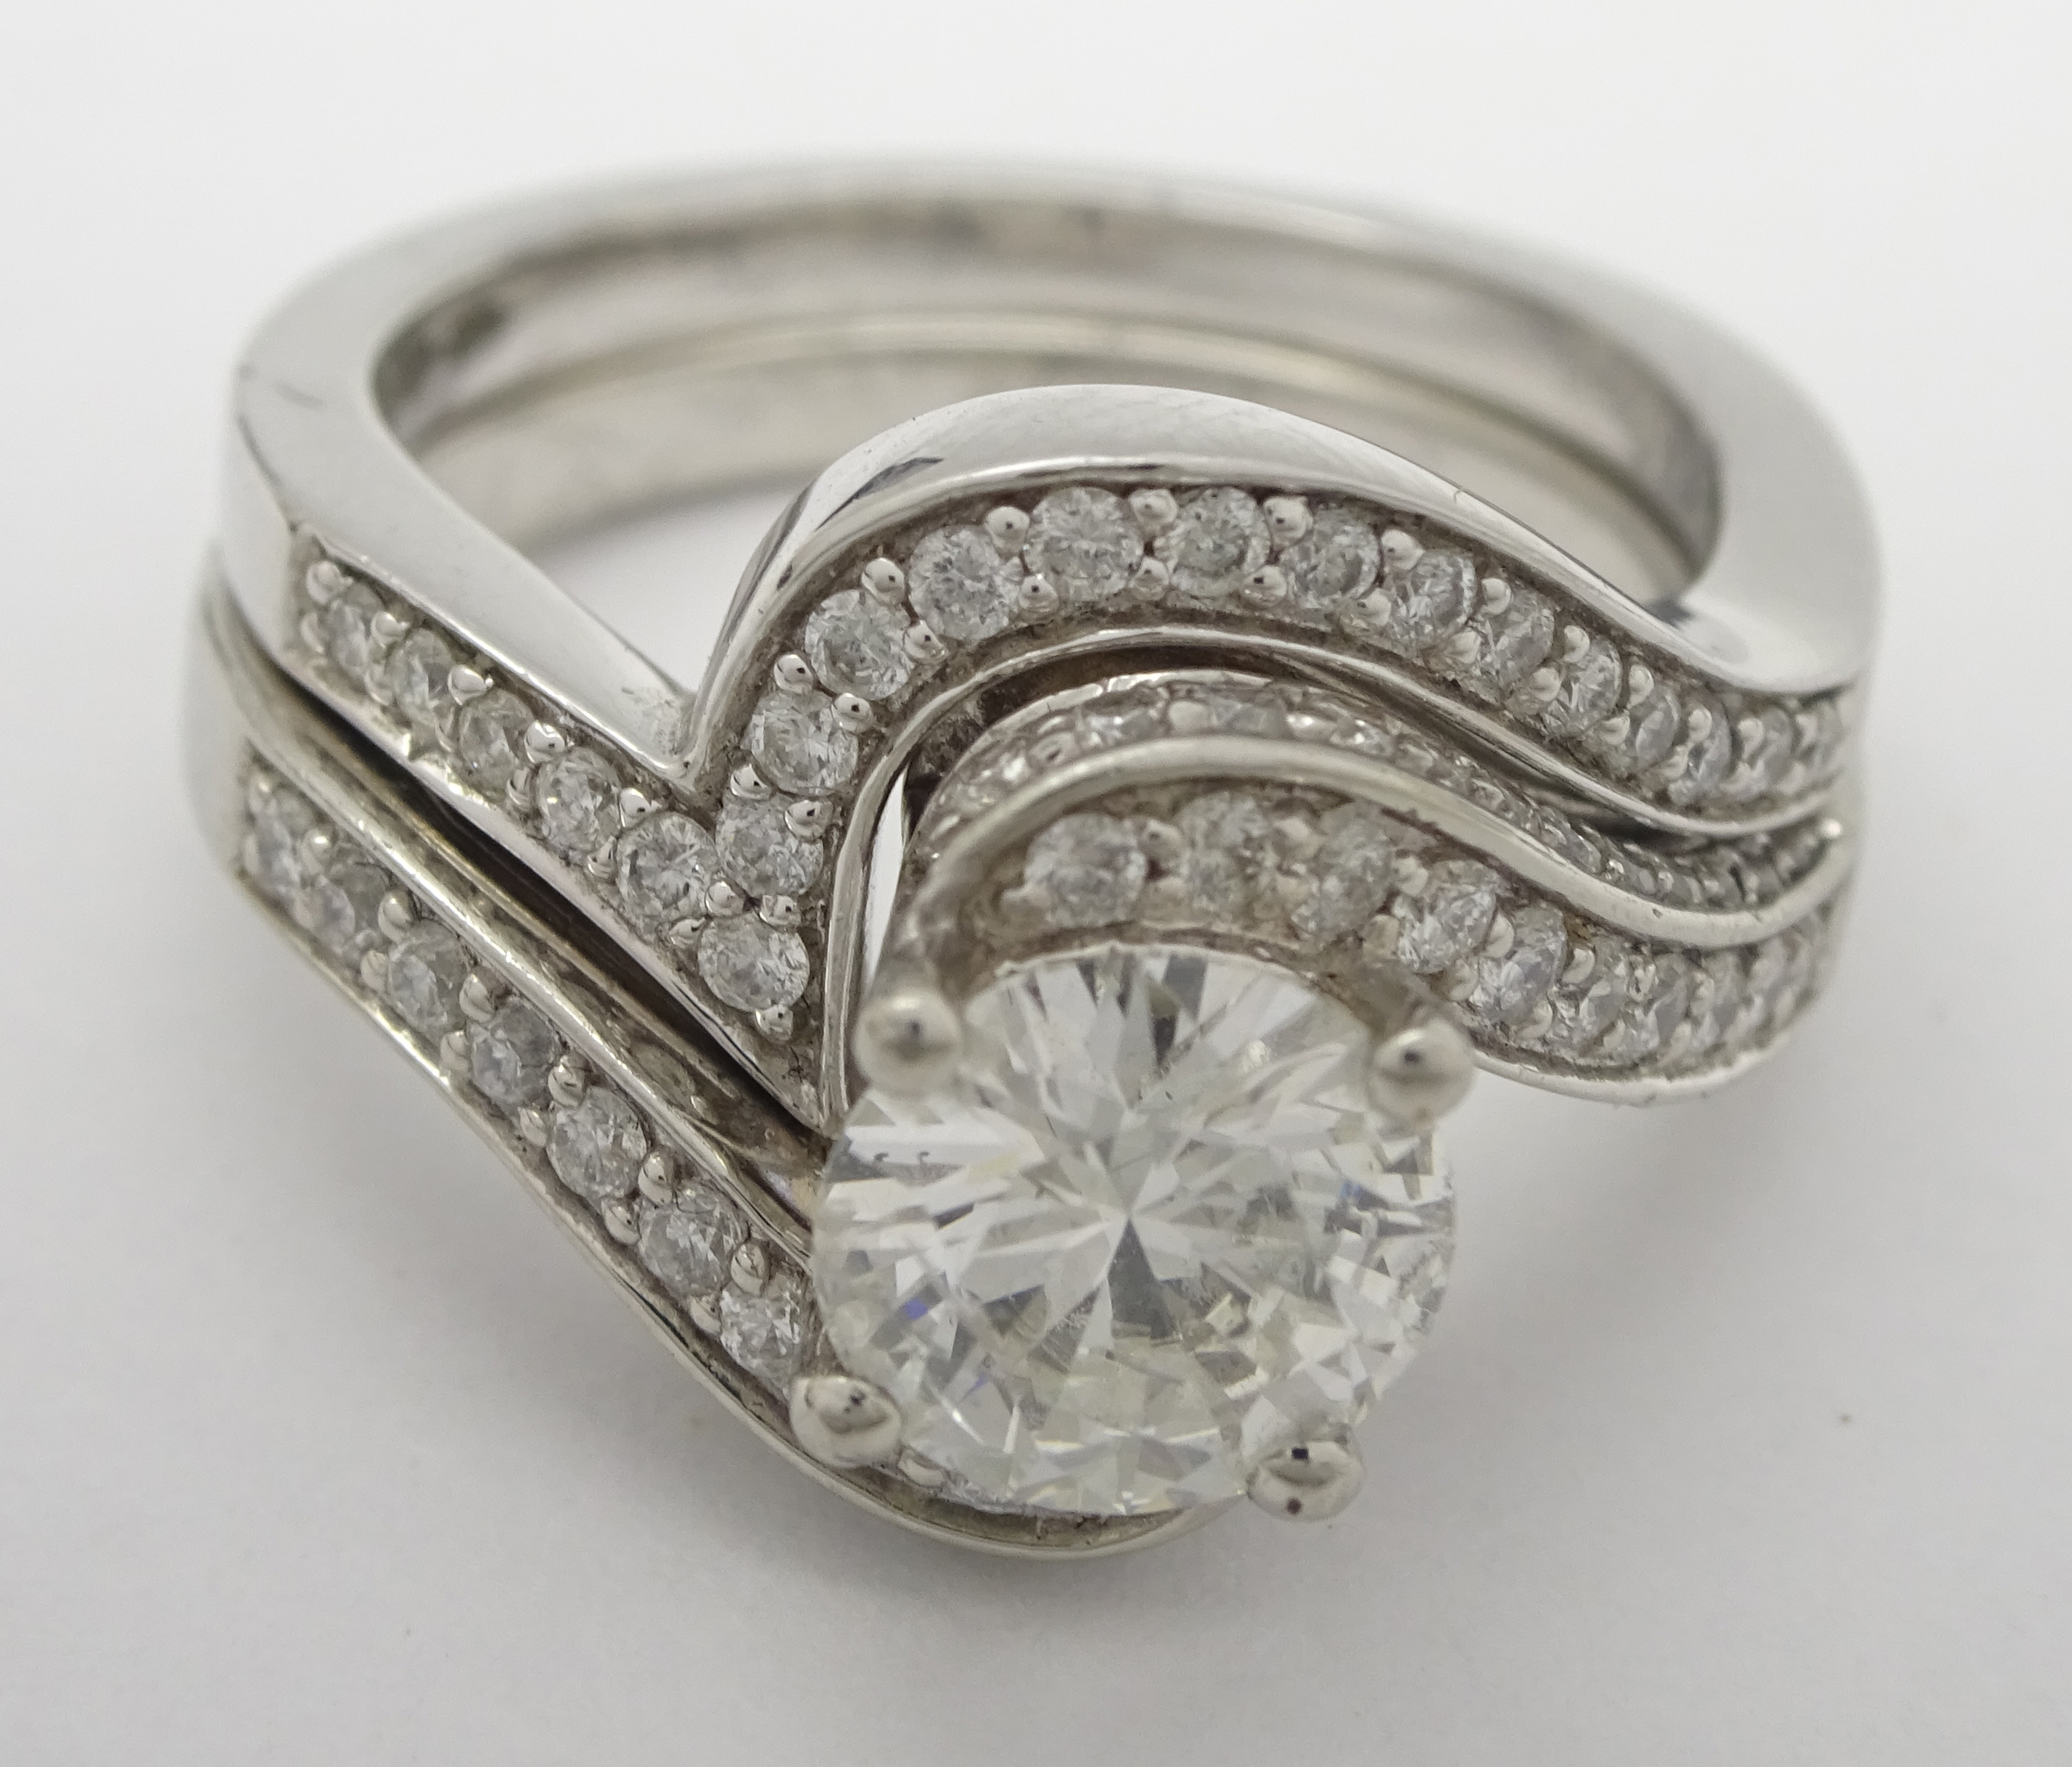 Lot 1035 - Two platinum rings, one set with a round brilliant cut diamond and diamond shoulders,